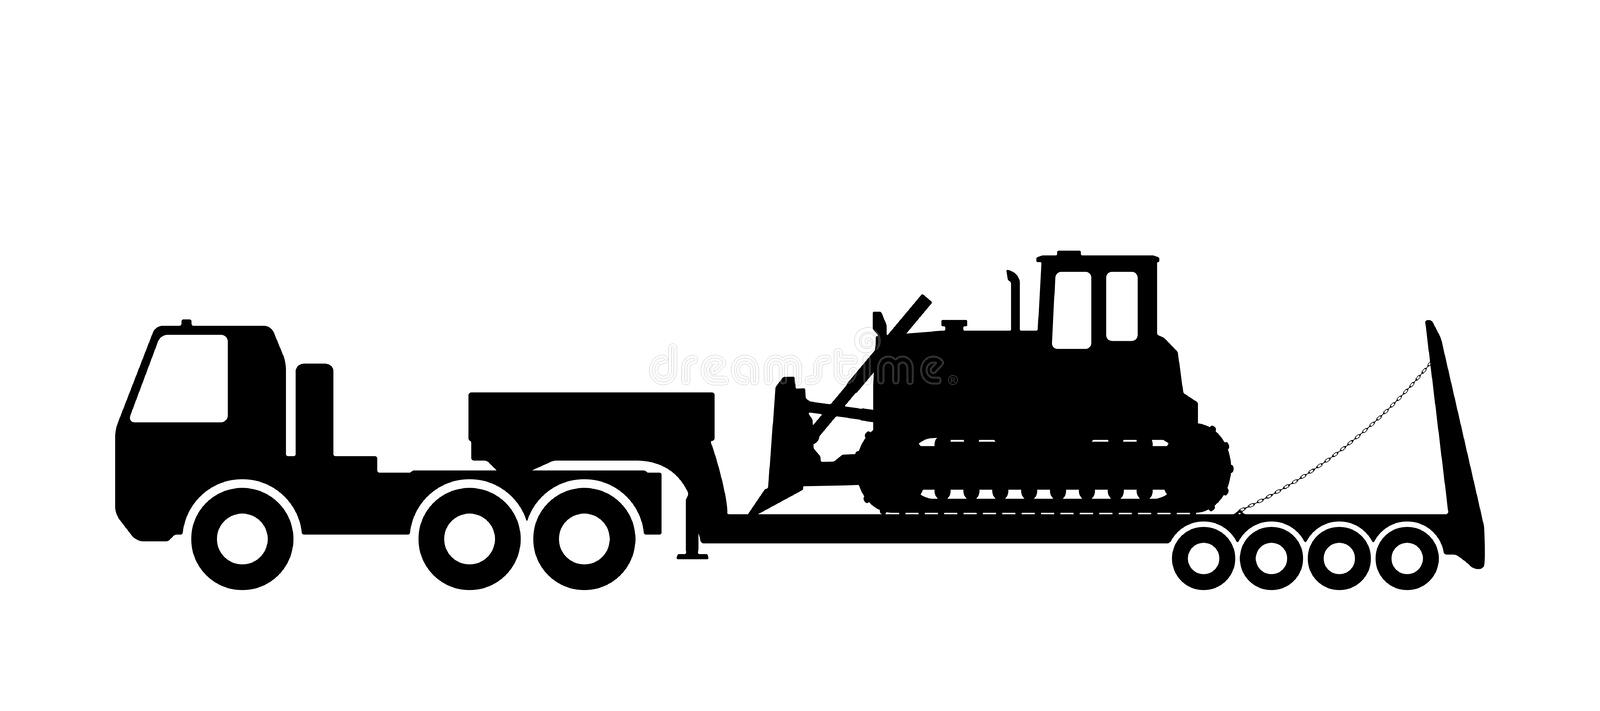 Silhouette of the tractor on the trawl. Vector illustration royalty free illustration